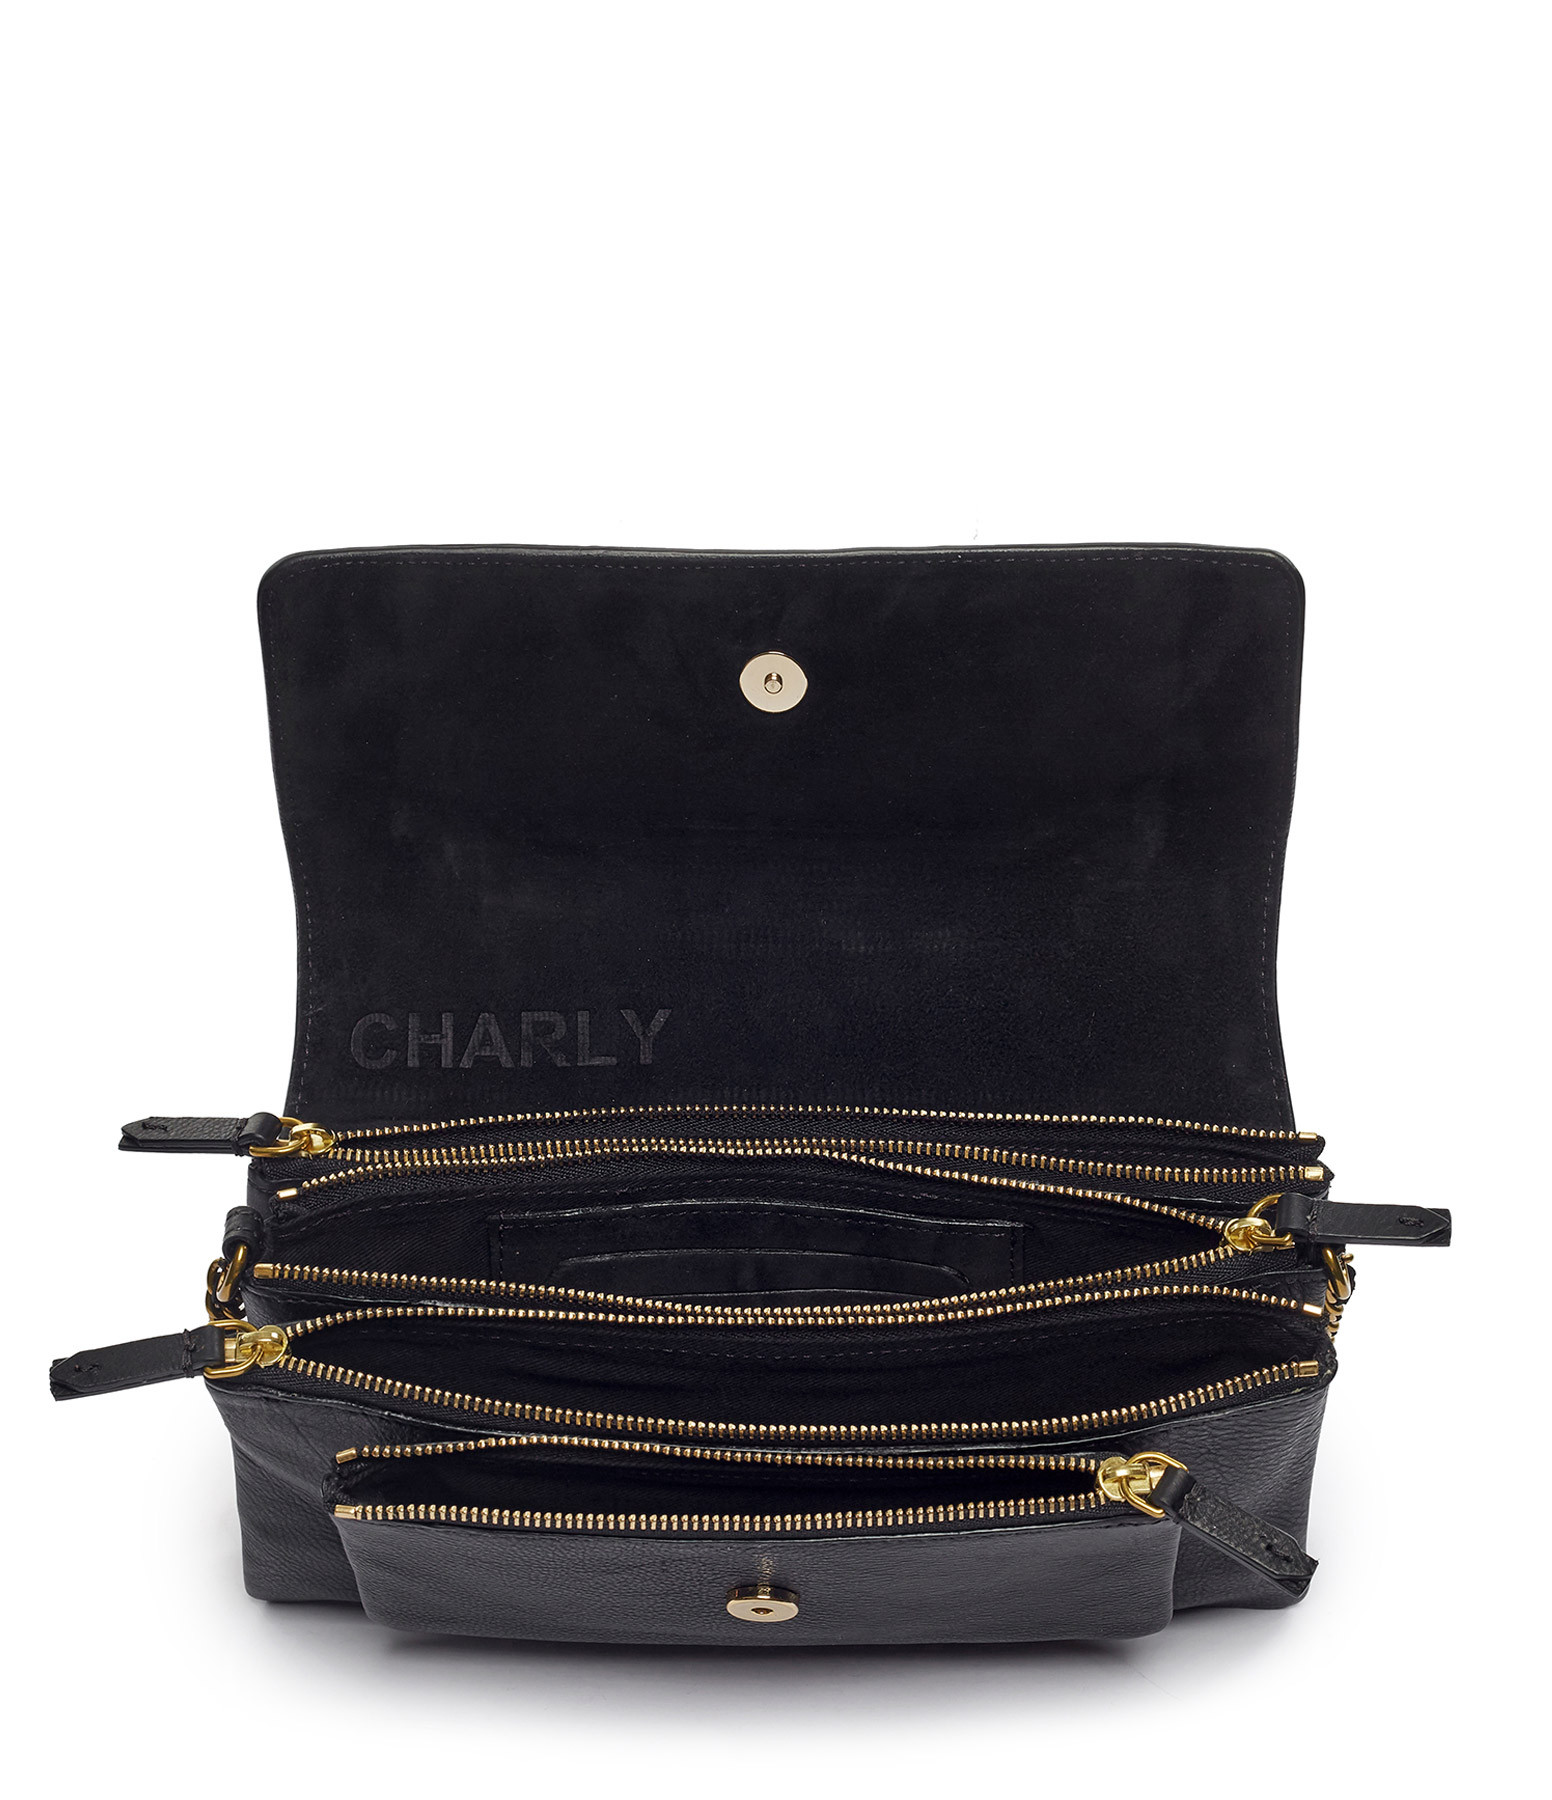 JEROME DREYFUSS - Sac Charly S Veau Chèvre Noir Brass